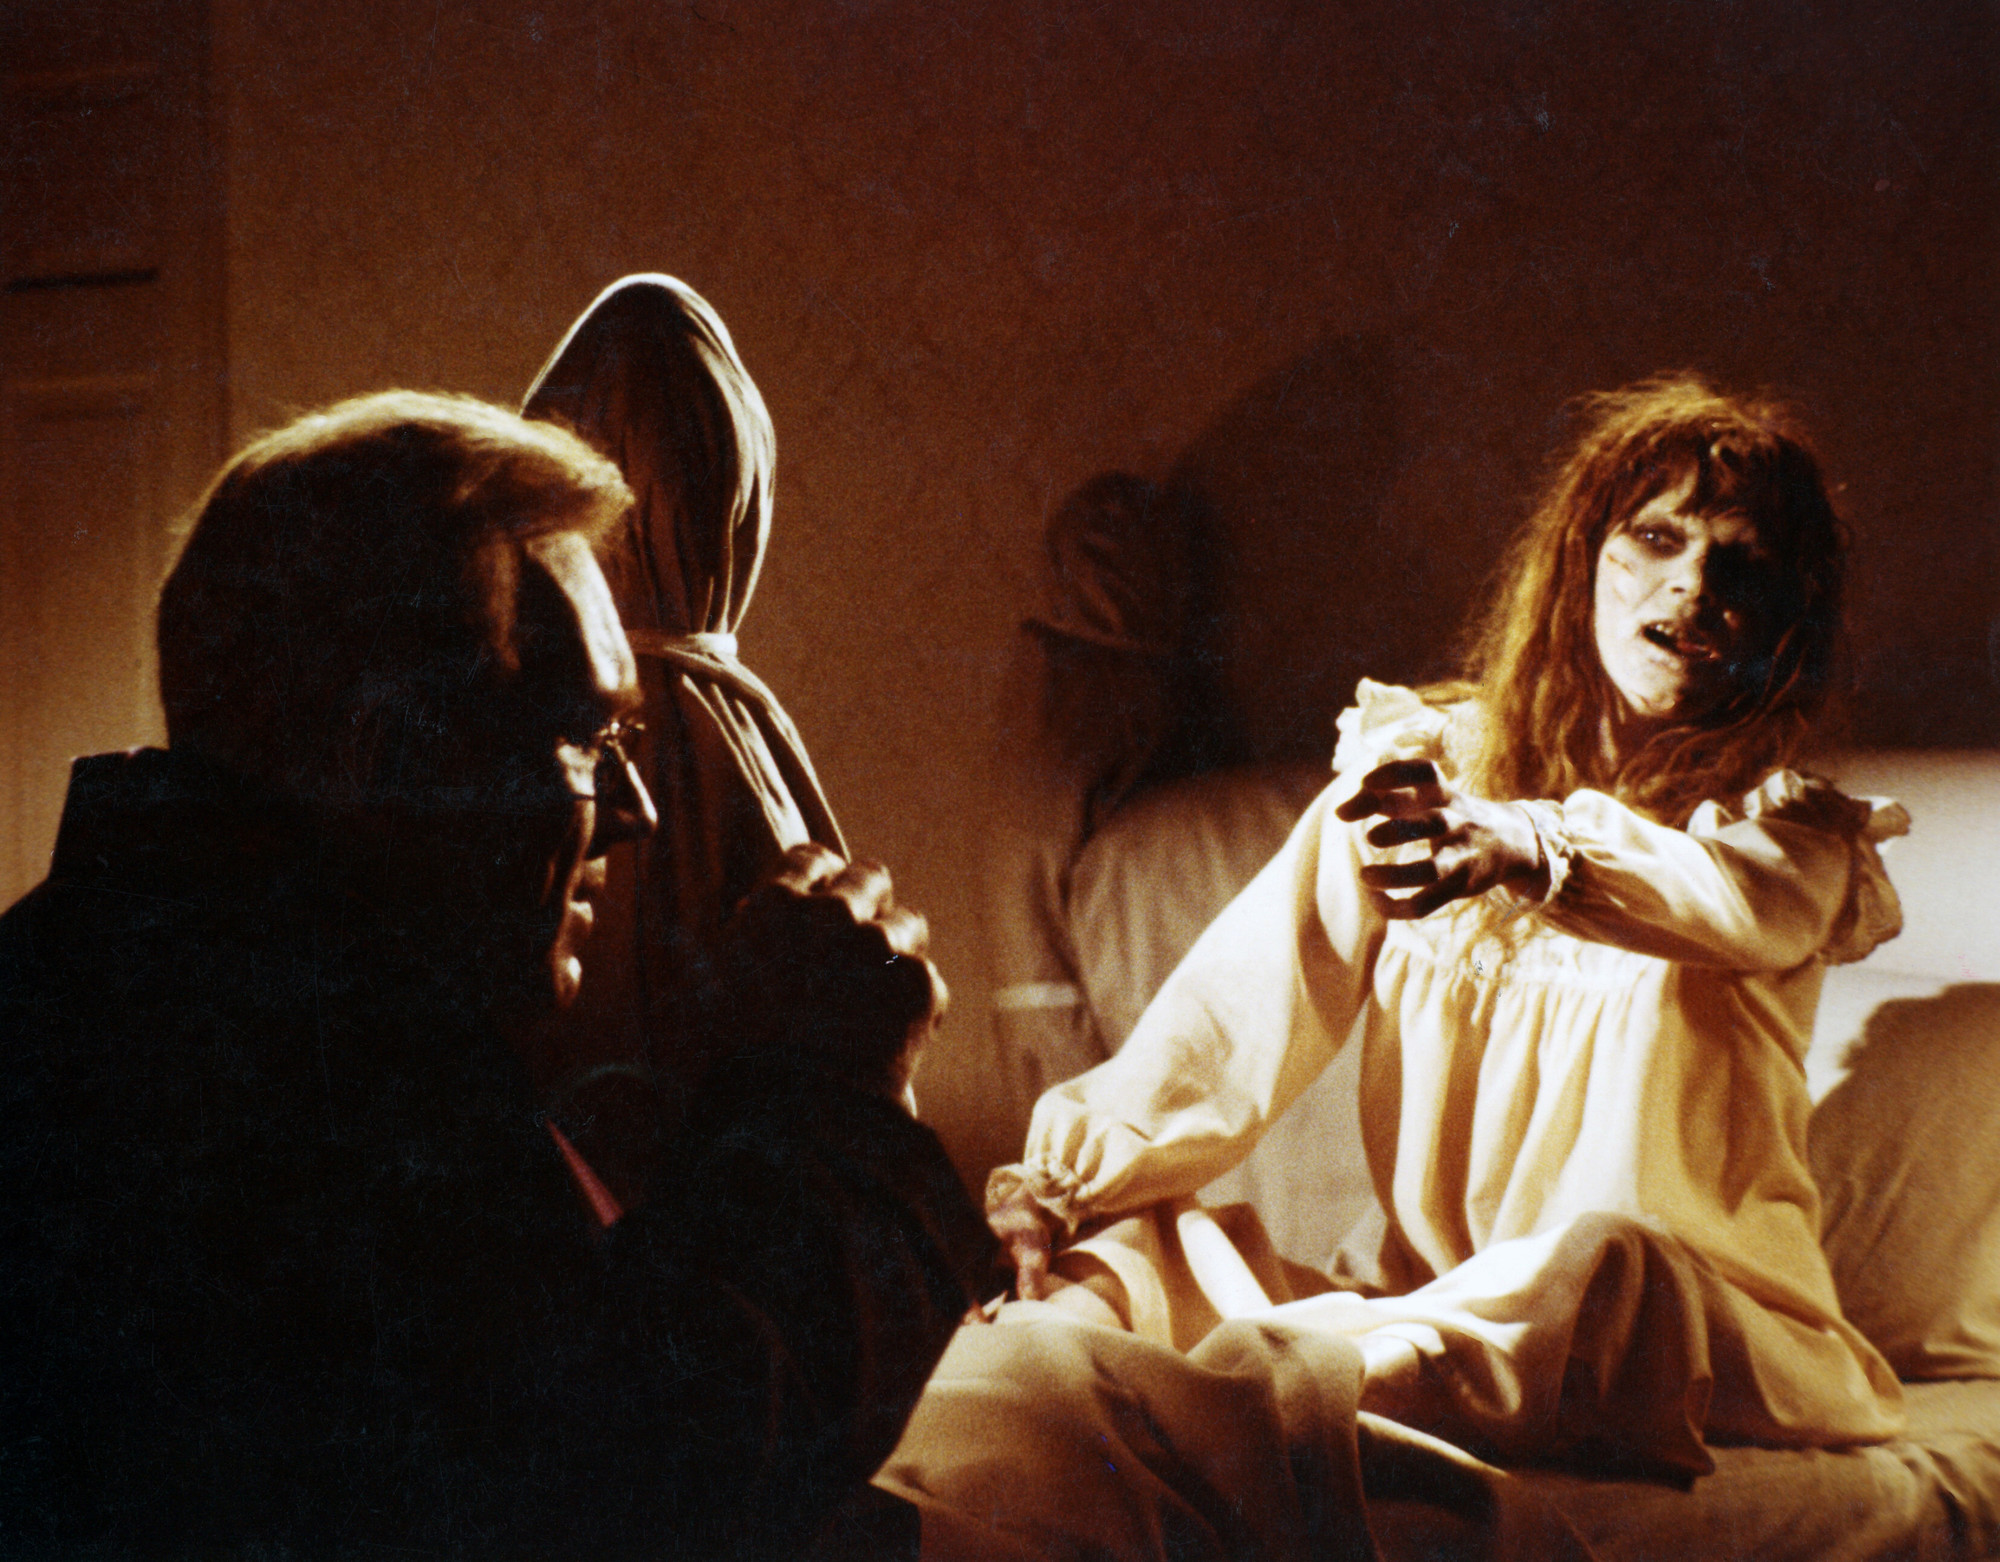 an analysis of deliverance in the exorcist by william friedkin Filmmaker william friedkin terrified millions – and forever changed the way horror movies are made – when he released the exorcist in 1973 now, 45 years on, he is set to frighten audiences .